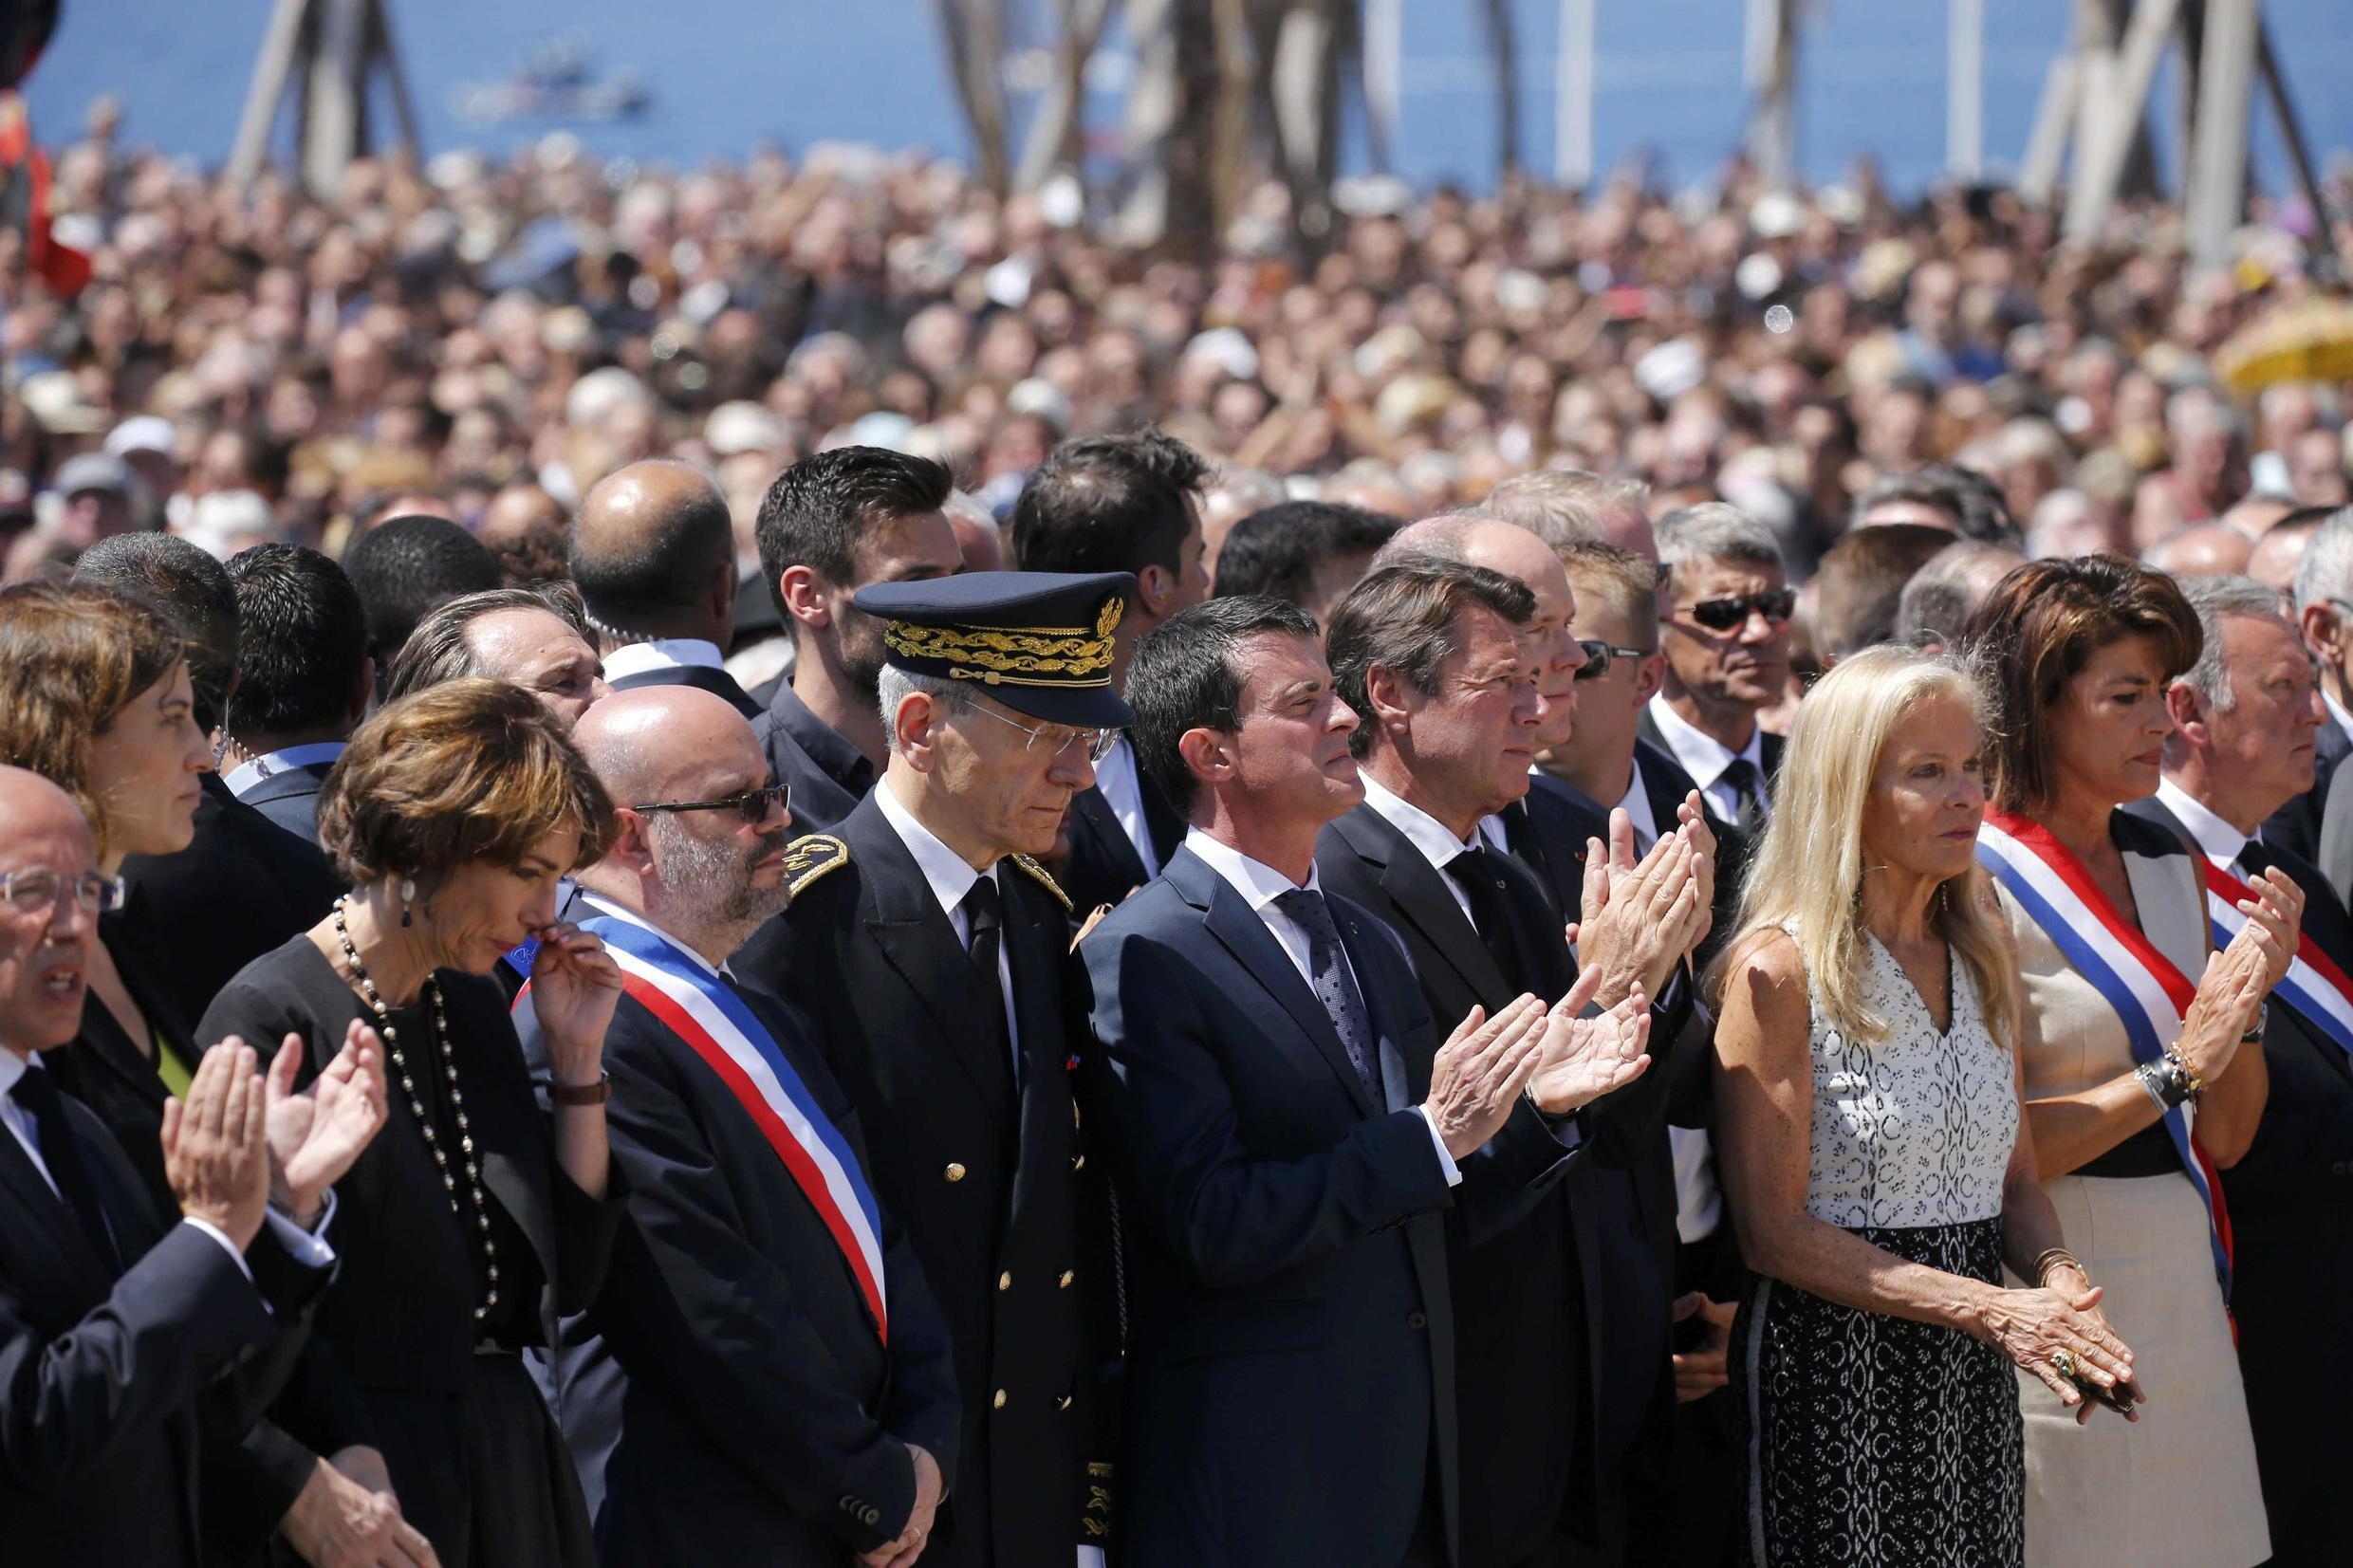 French Prime Minister Manuel Valls (C), who was booed by part of the crowd, at the minute's silence for the victims in Nice on Monday